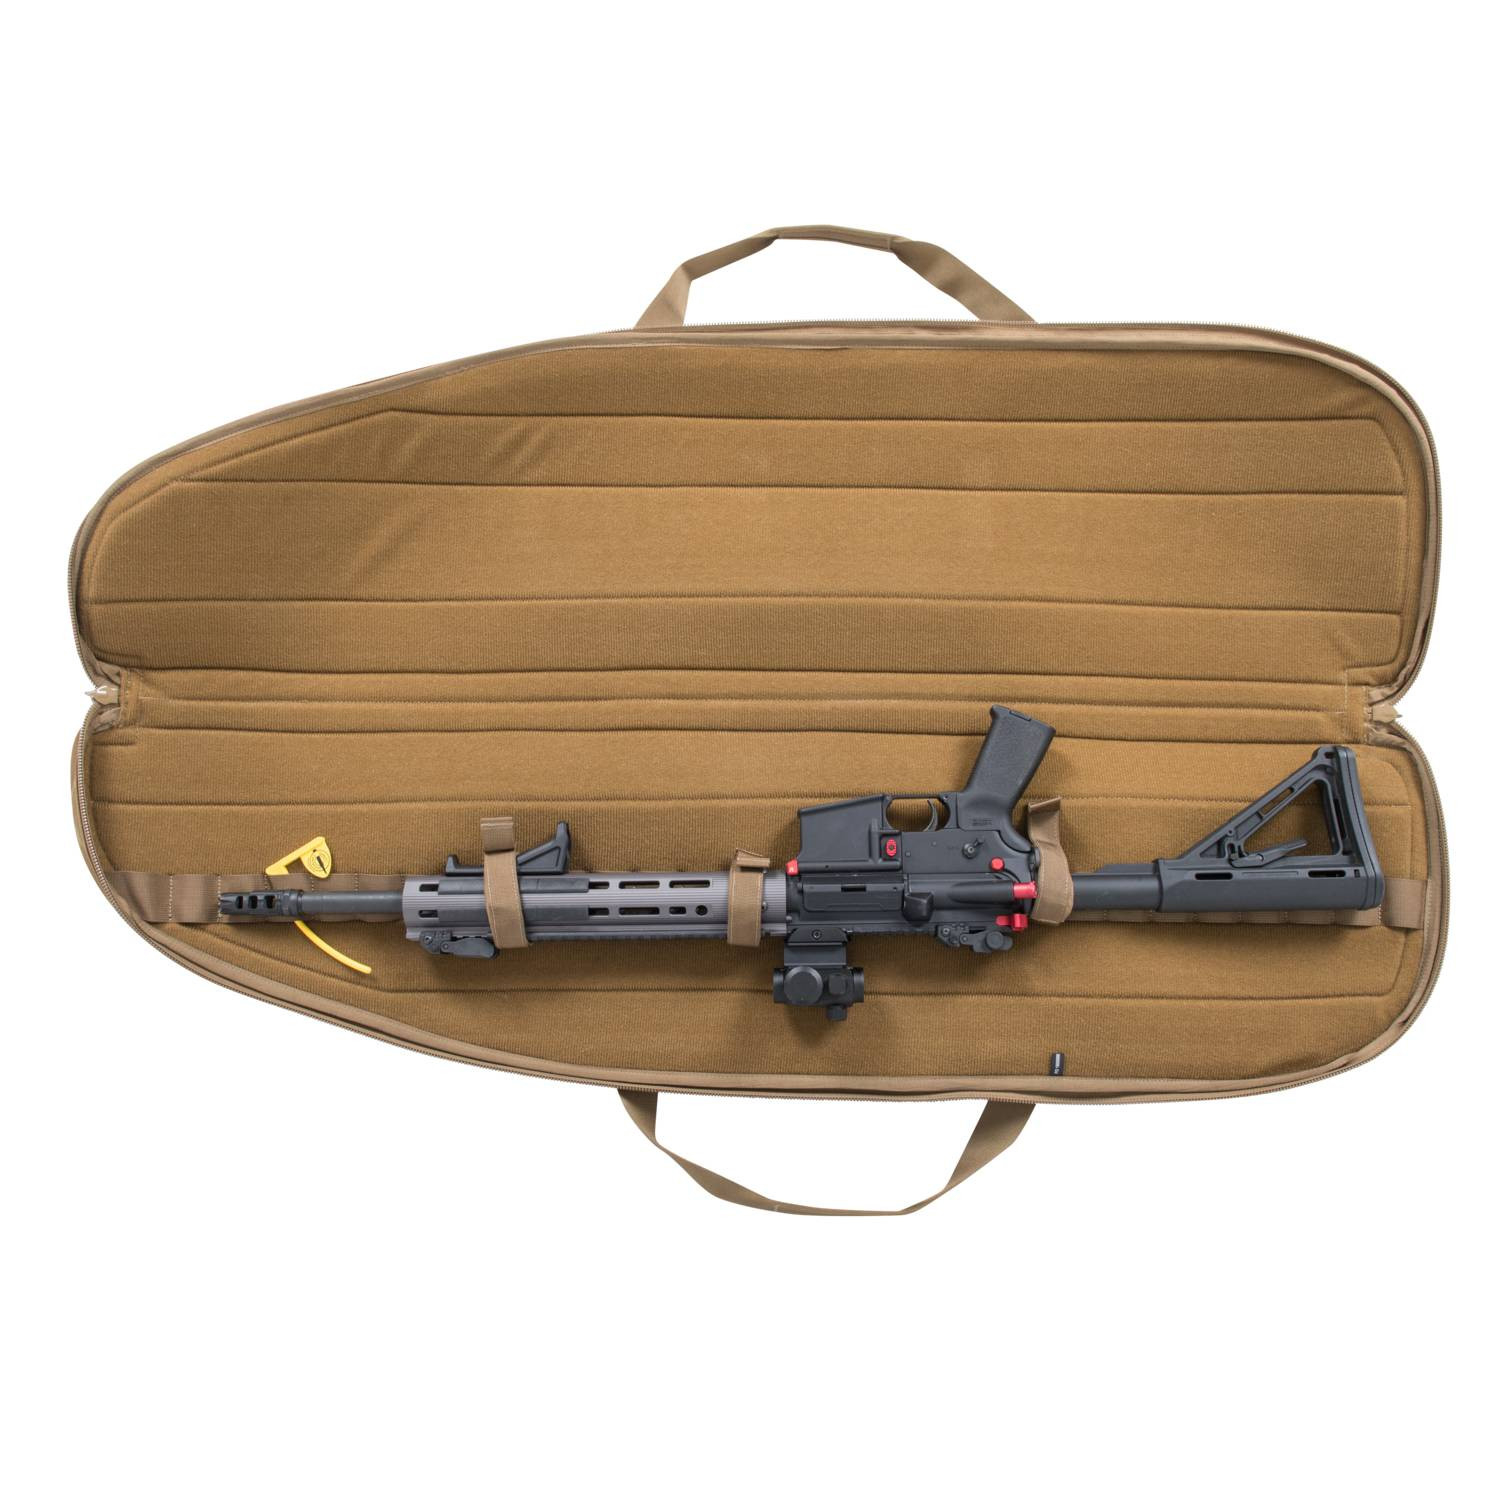 Pokrowiec Basic Rifle Case Detal 4